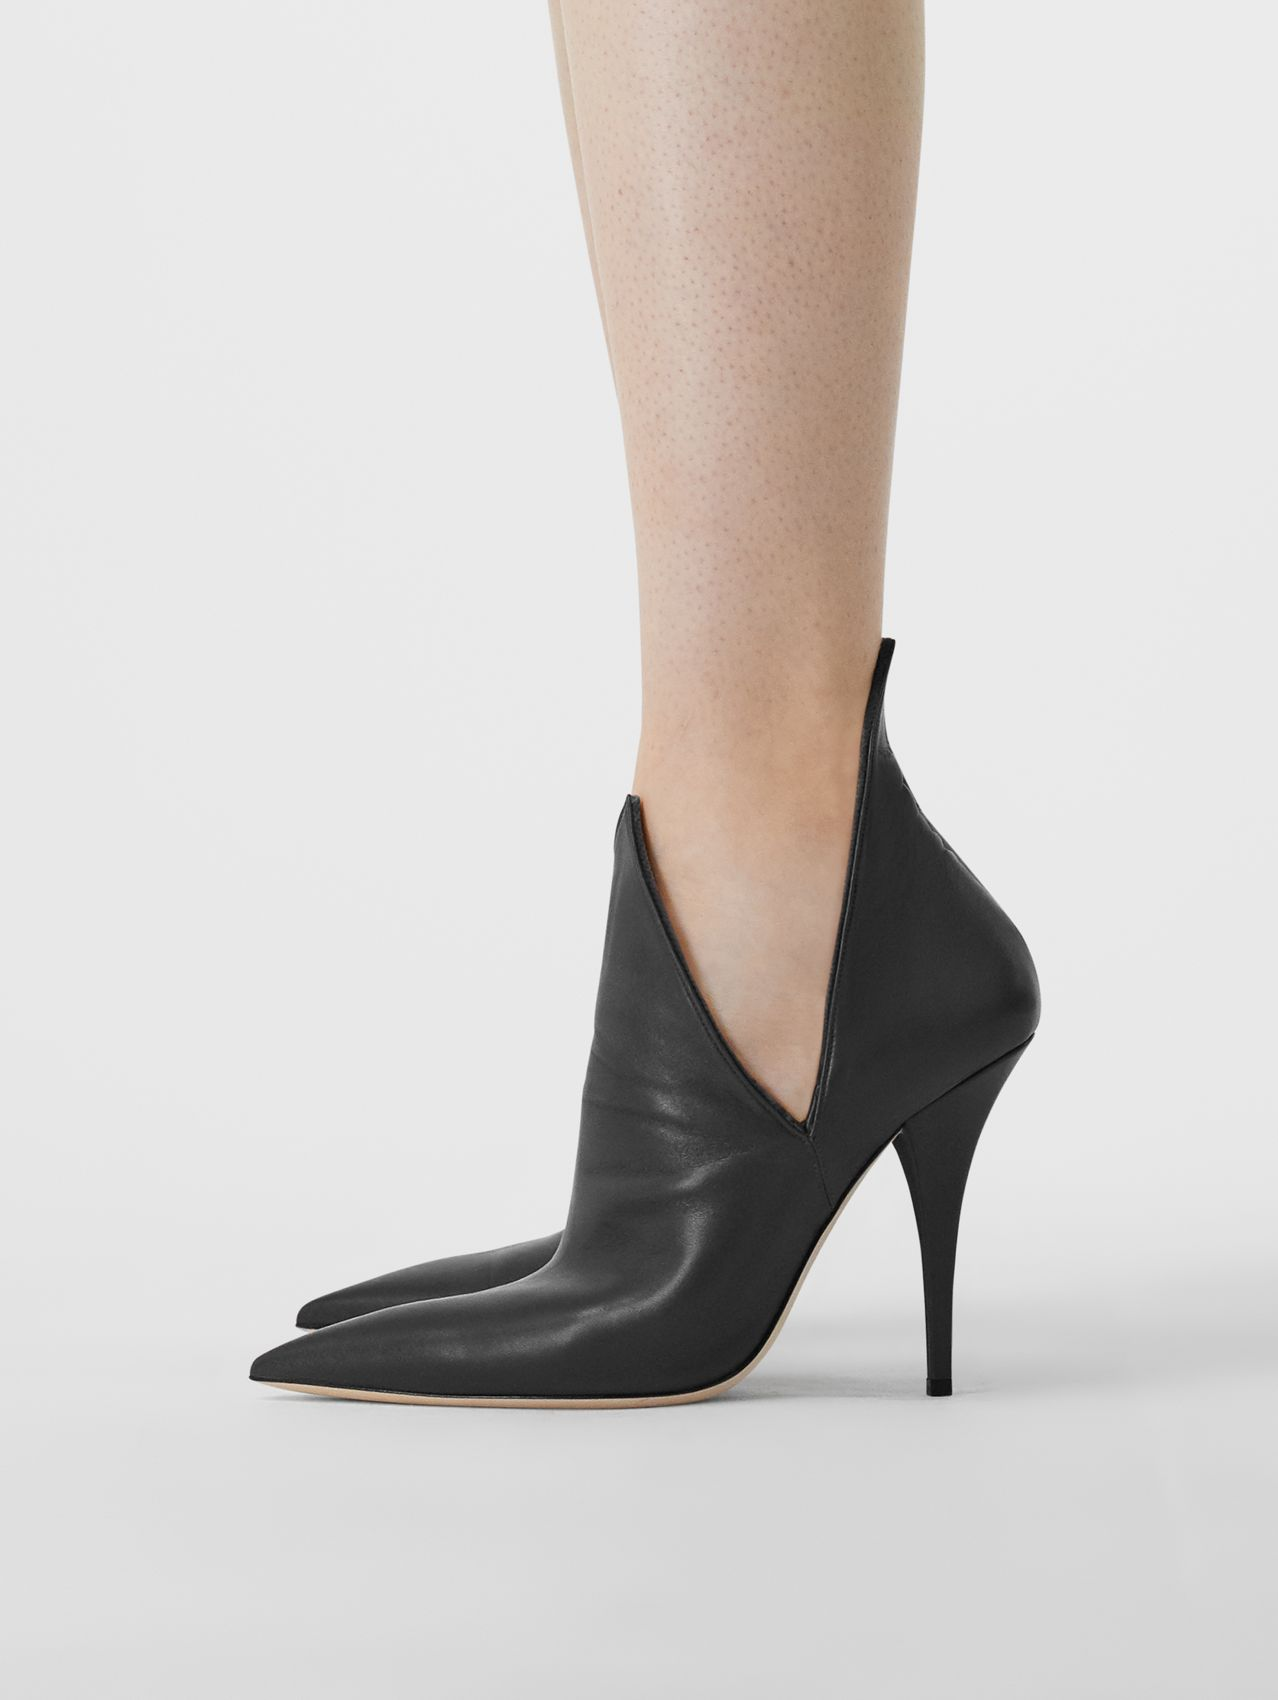 Velvet and Lambskin Foldover Point-toe Pumps in Black